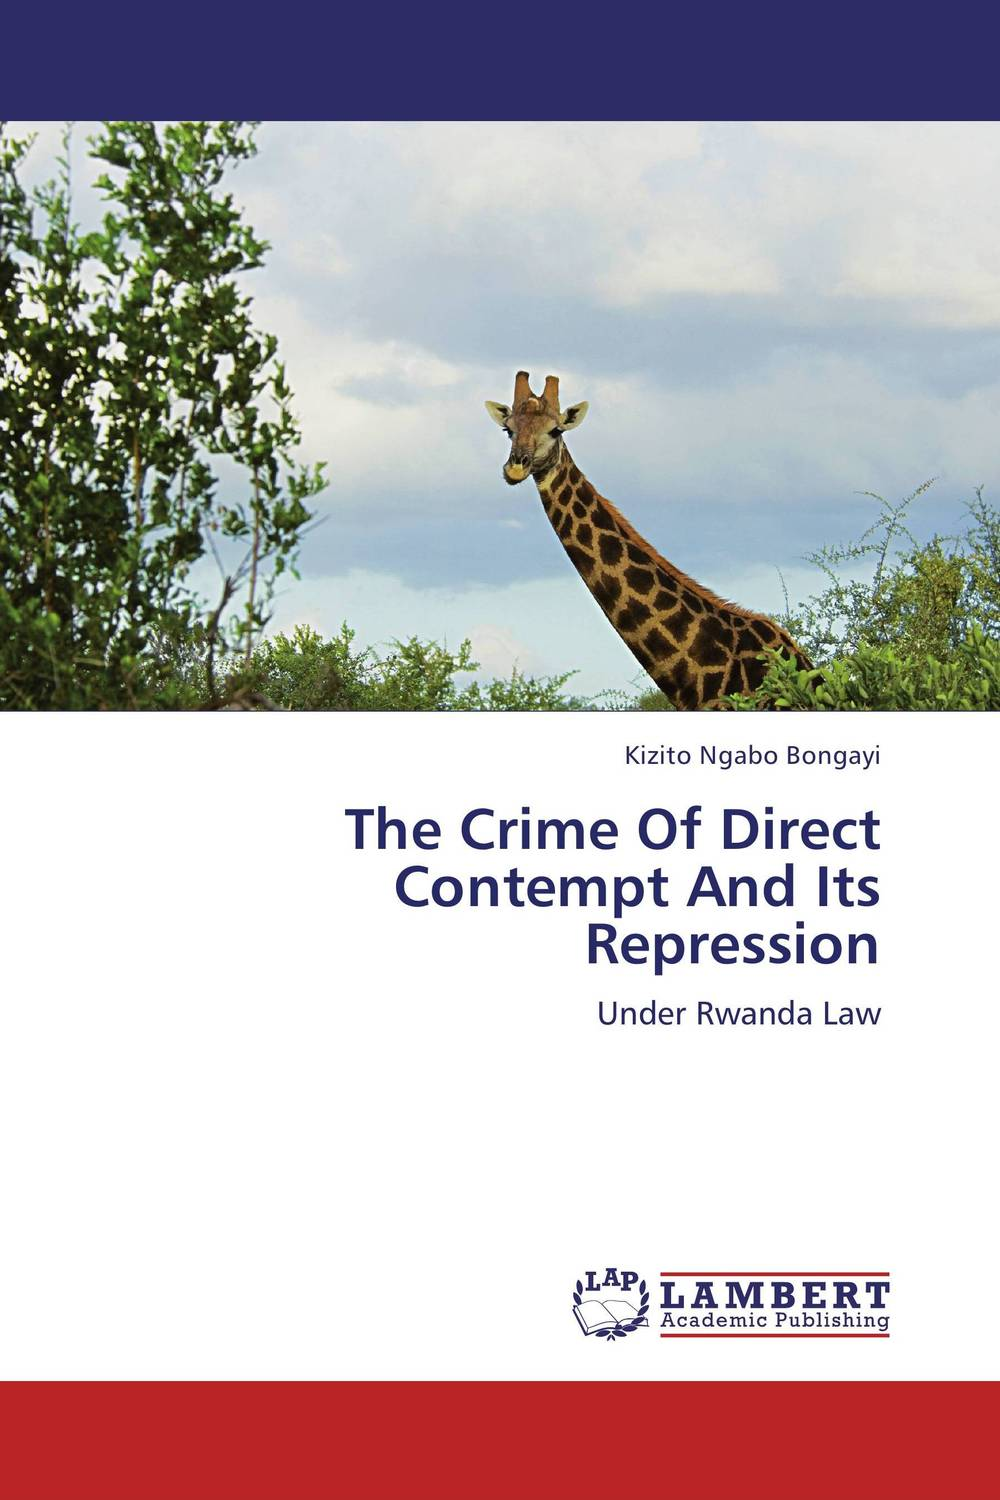 The Crime Of Direct Contempt And Its Repression the crime of direct contempt and its repression